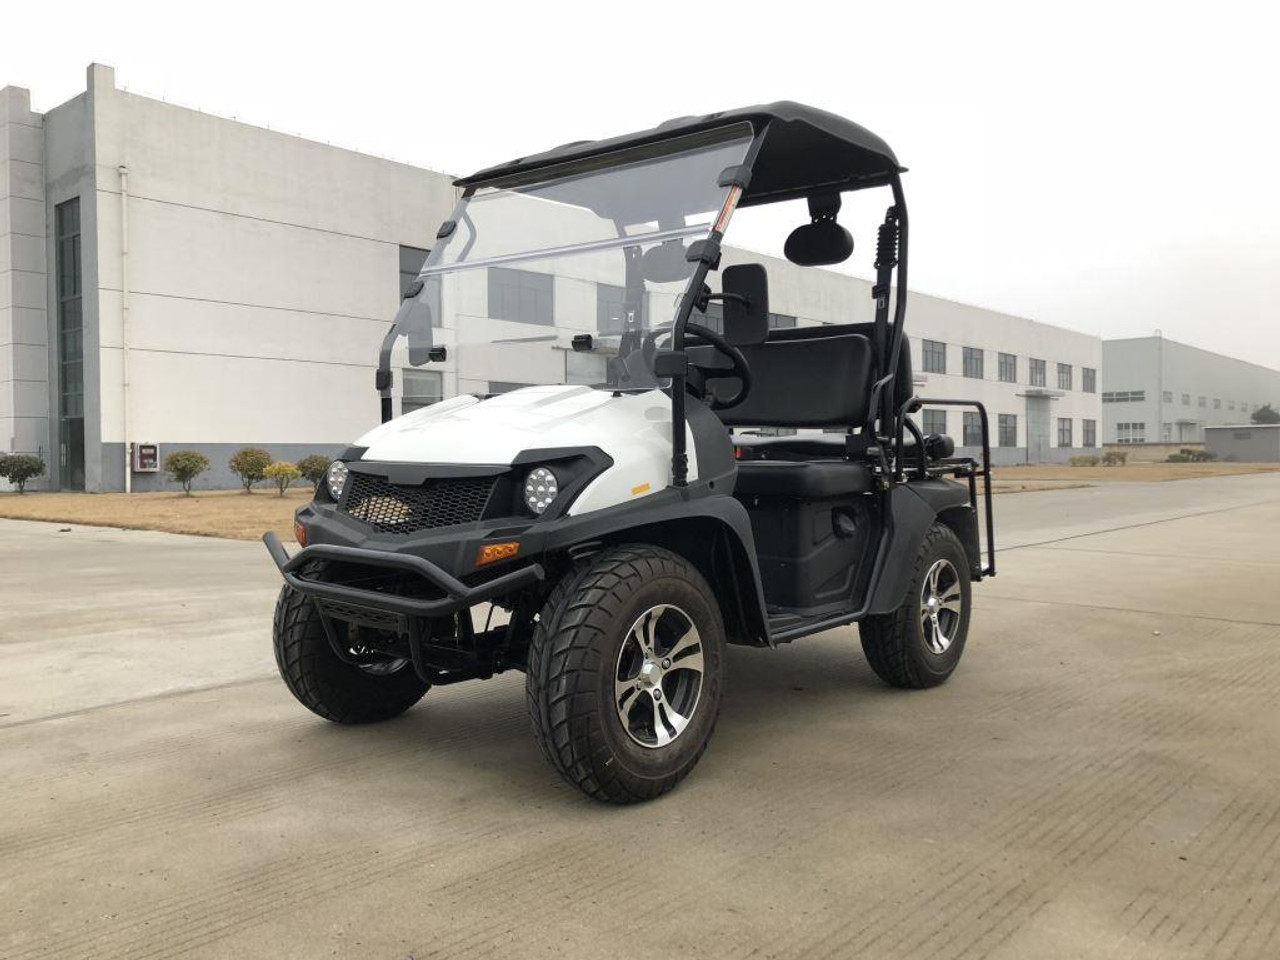 Trailmaster Taurus 200 MFV (Side By Side) 4-Stroke, Single Cylinder, Air And Oil Cooled